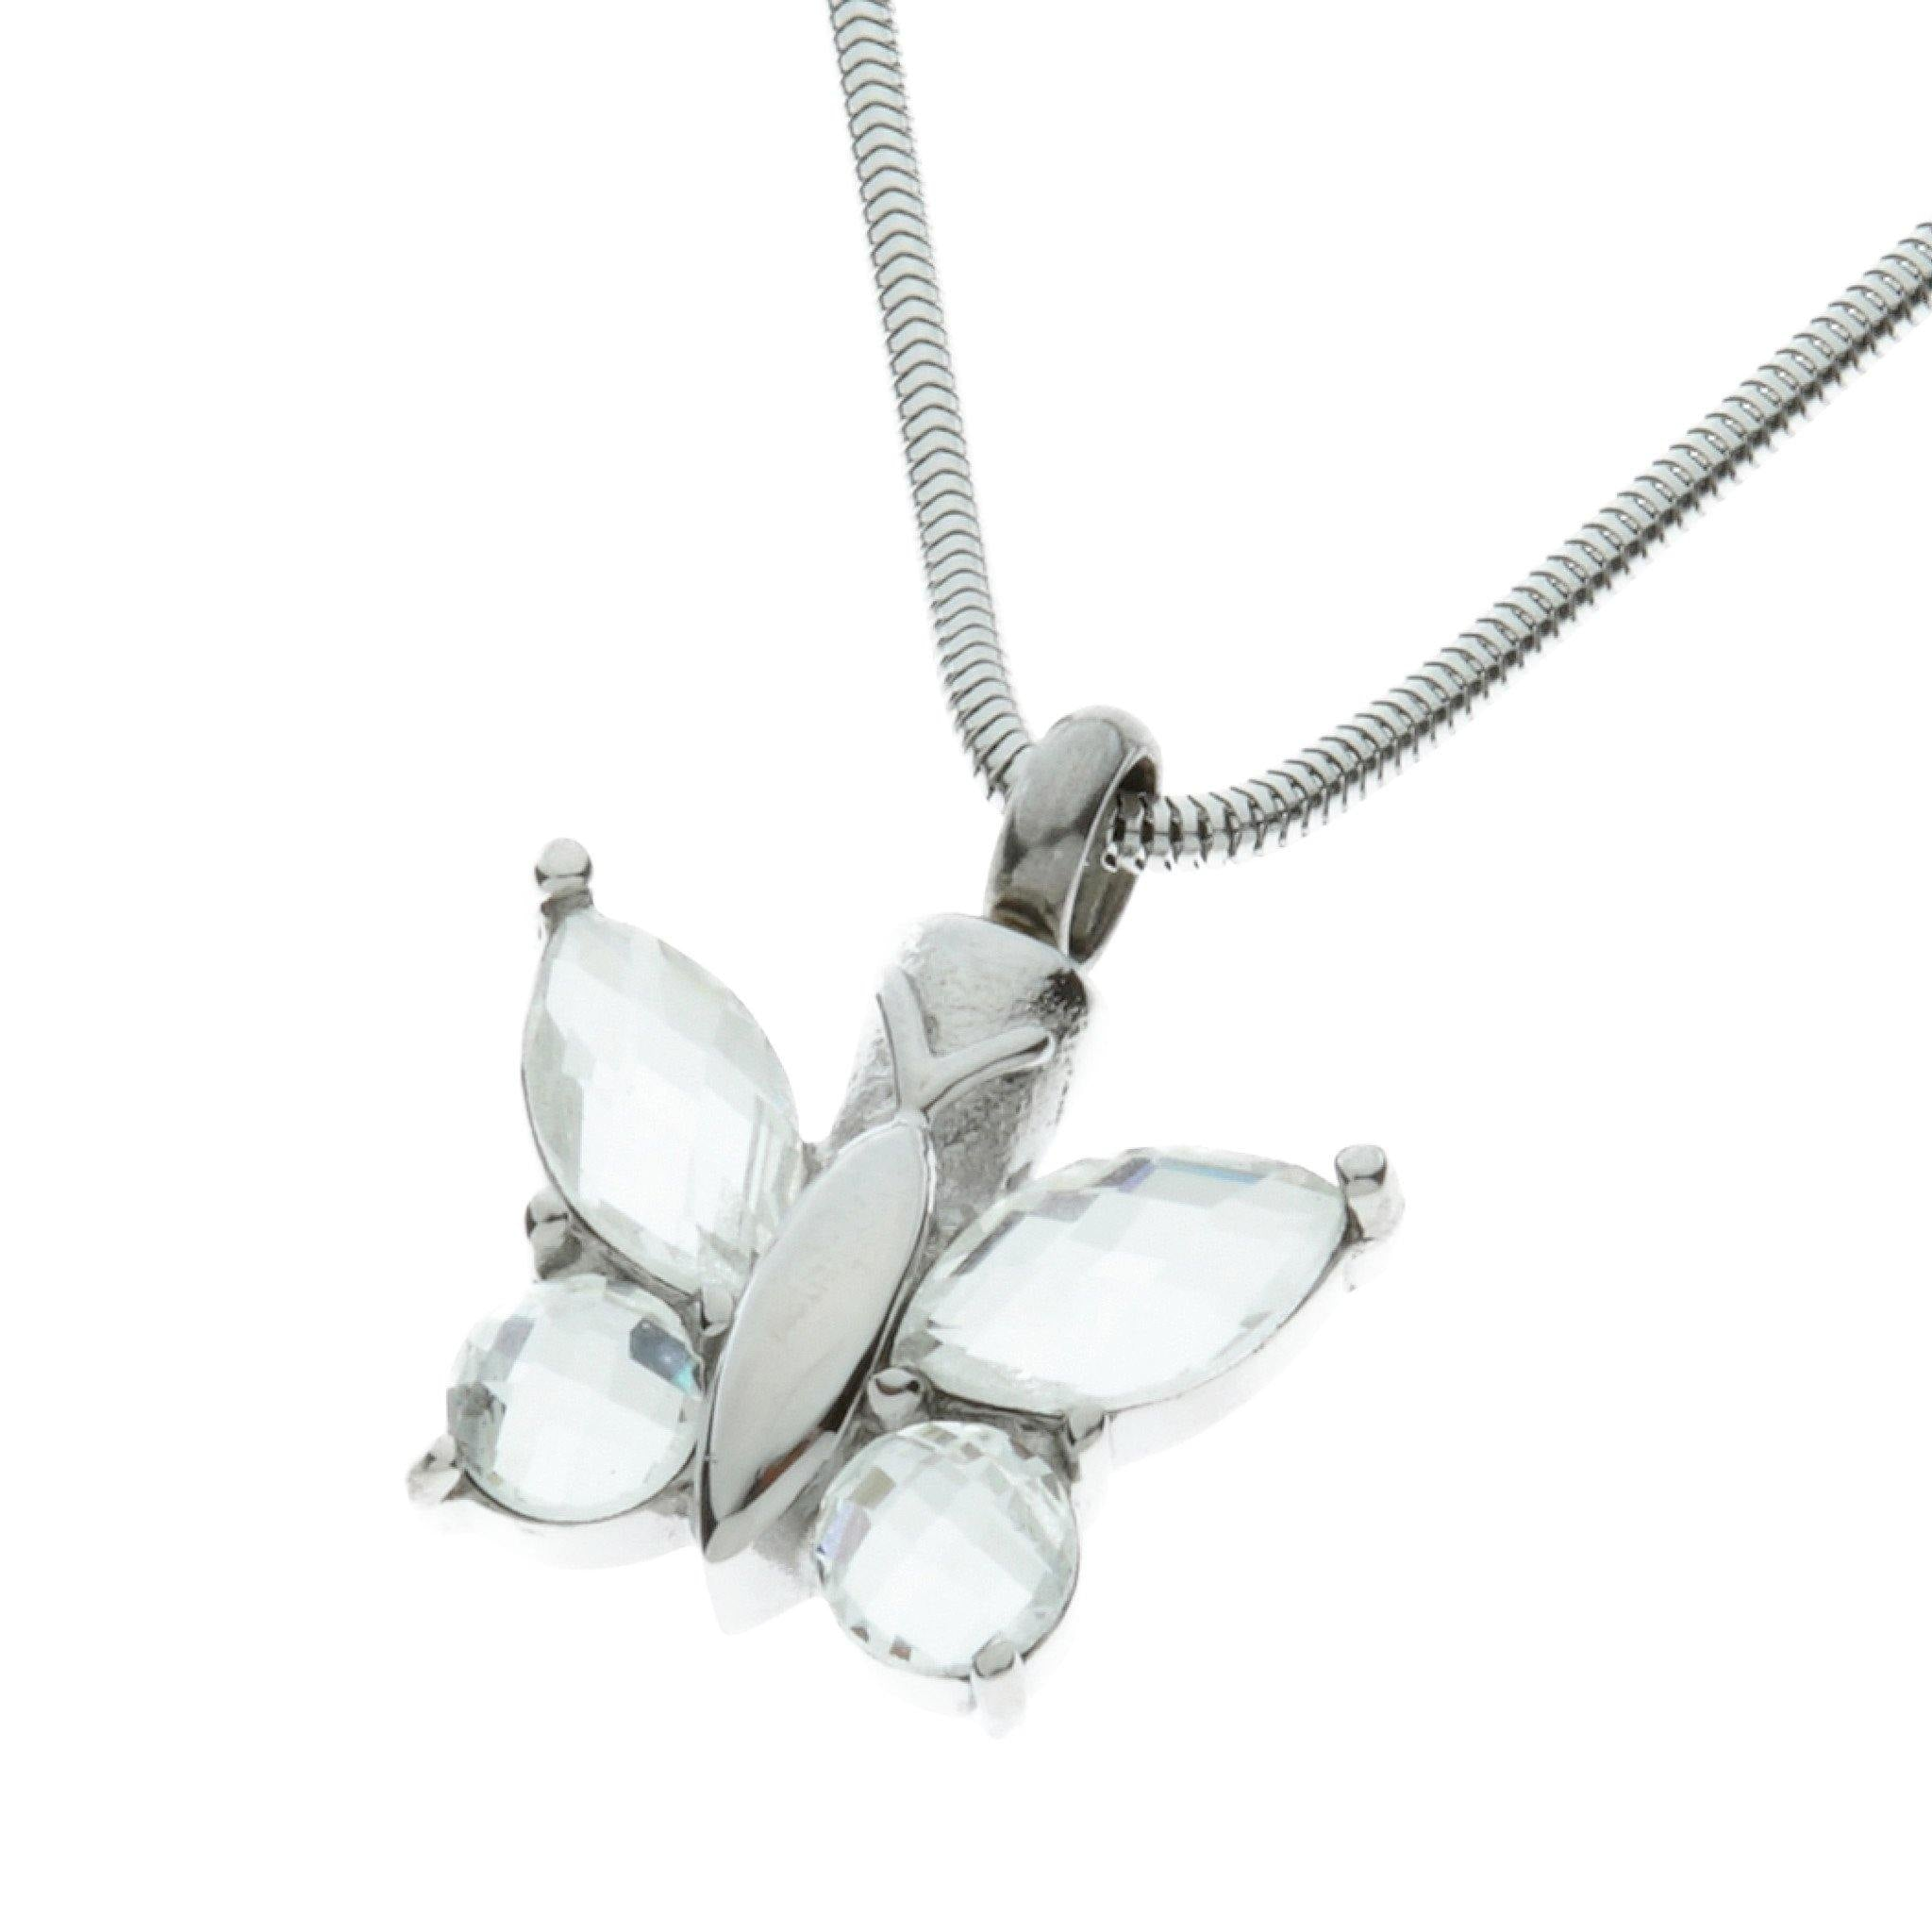 Diamond Butterfly Cremation Ashes Pendant Design 56 - Urns UK